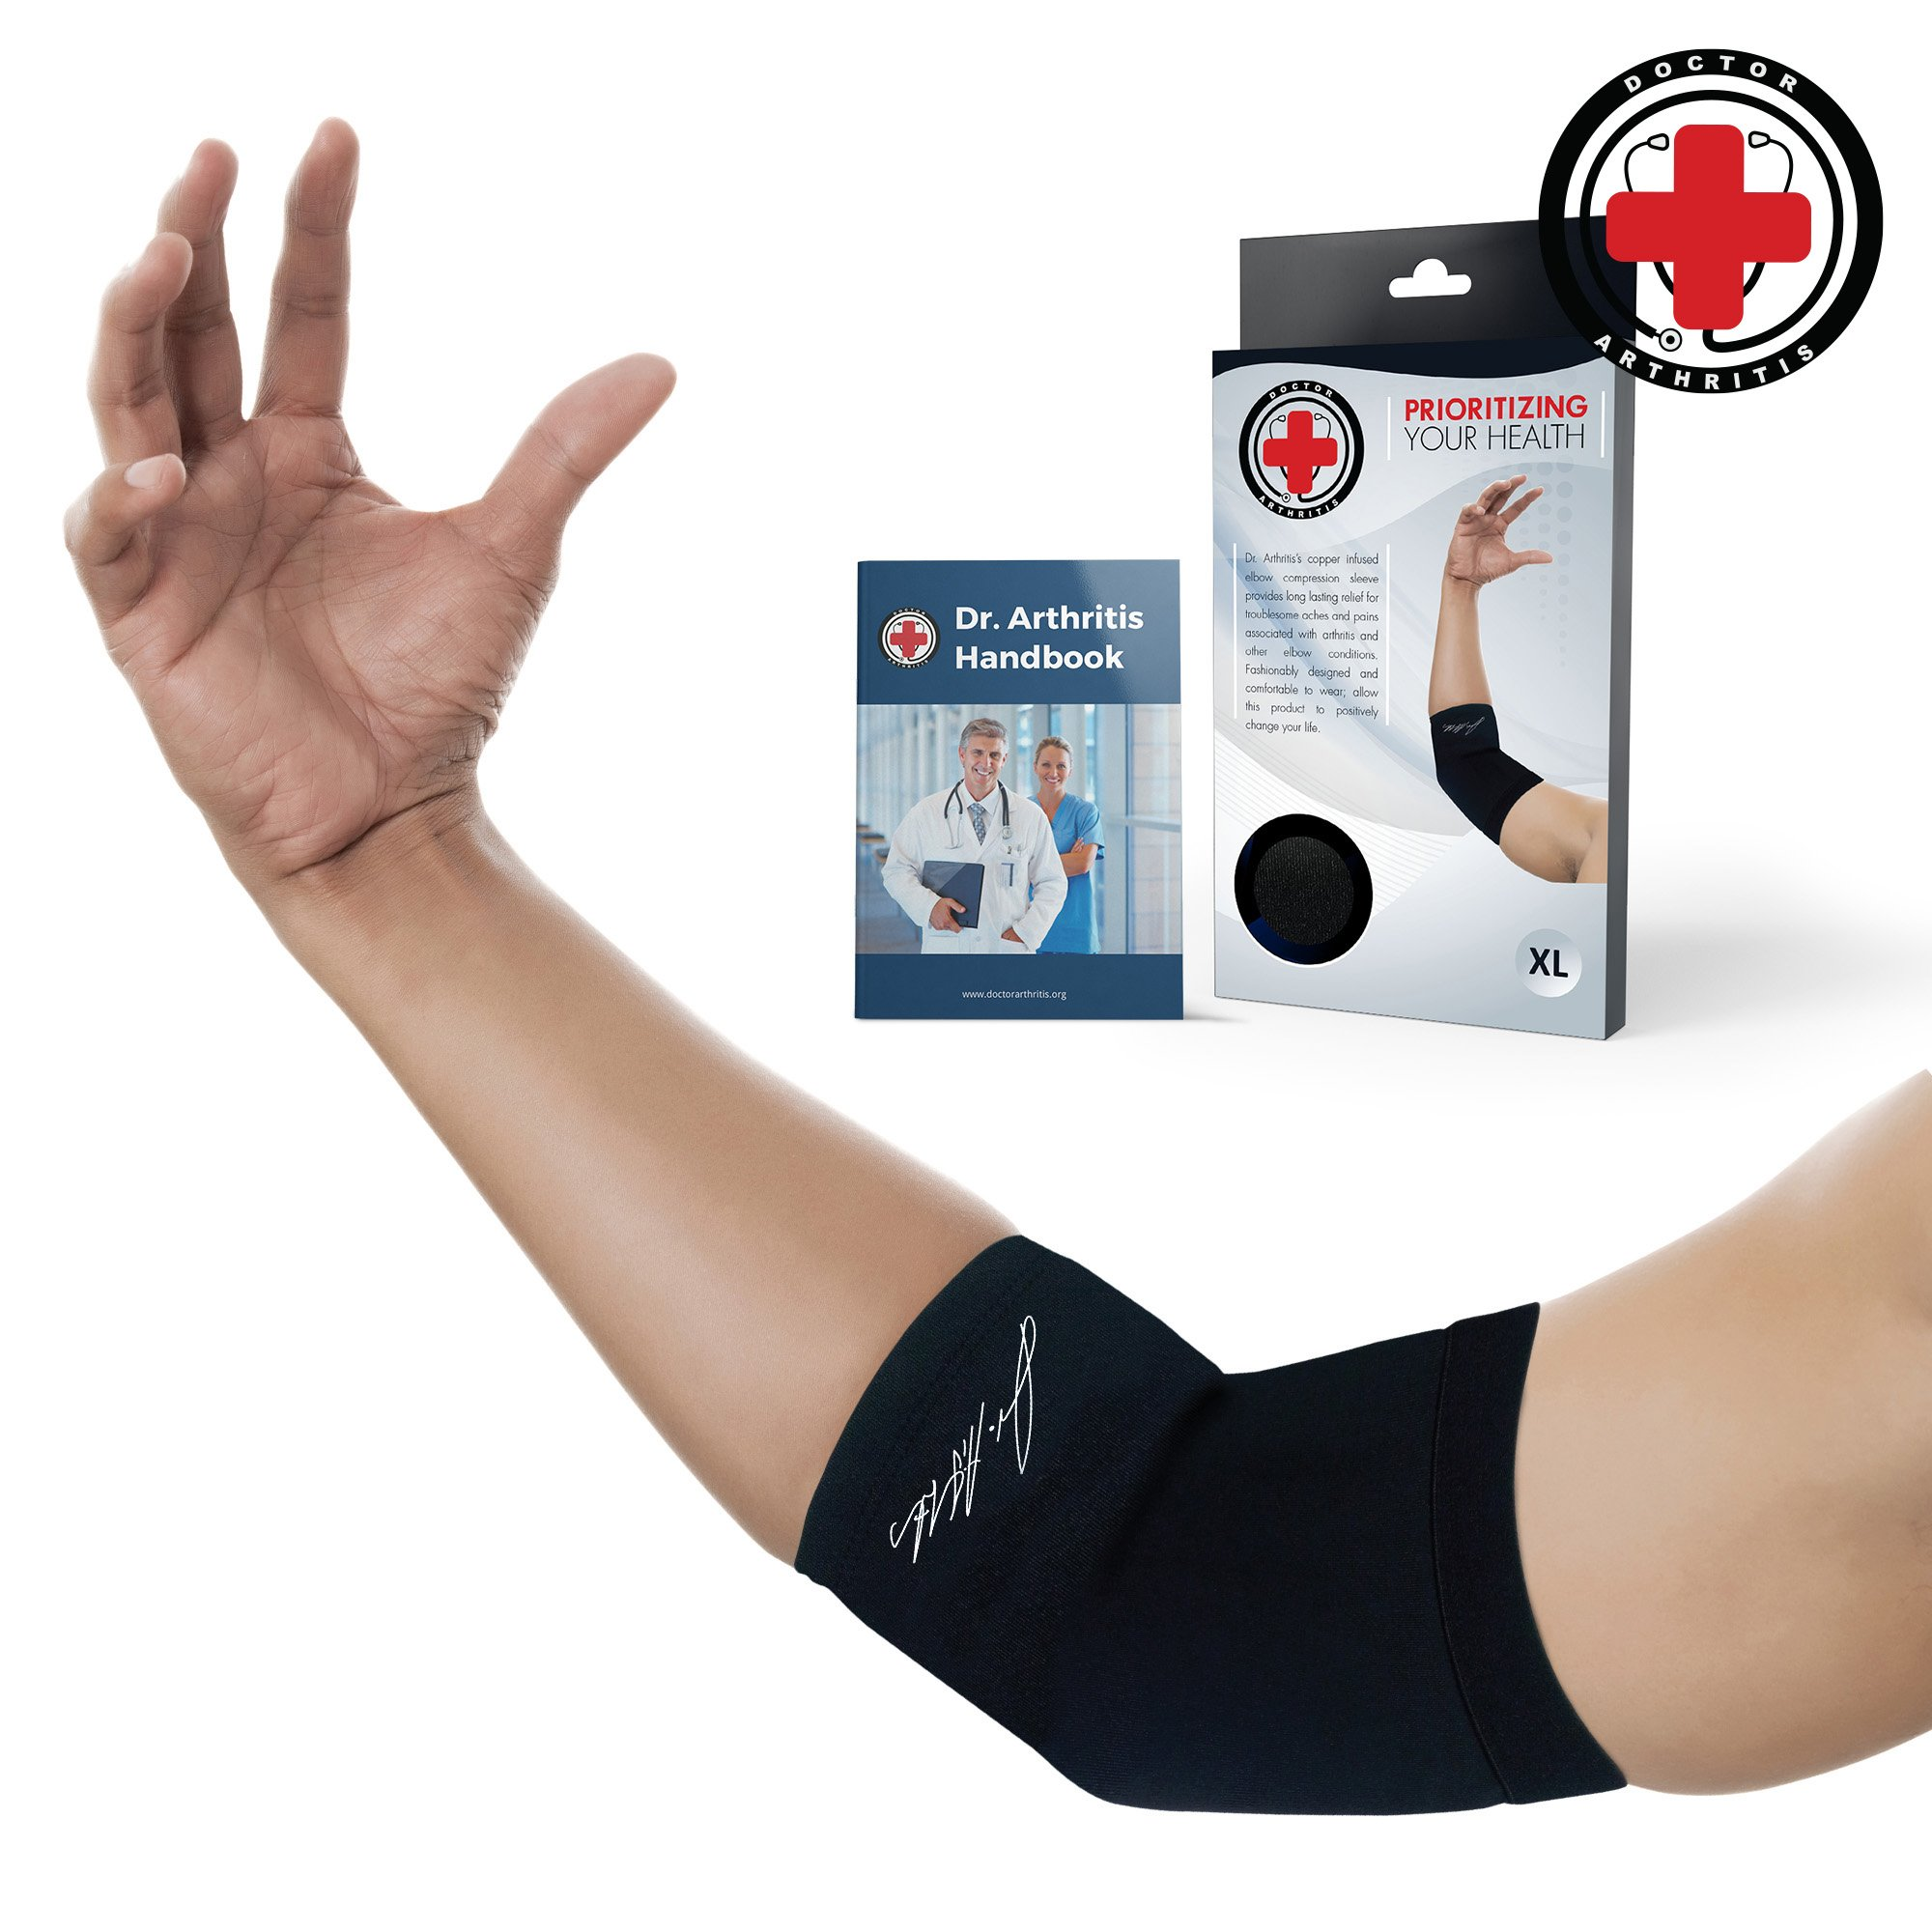 Doctor Developed Copper Elbow Brace & Elbow Support Sleeve AND DOCTOR WRITTEN HANDBOOK —GUARANTEED relief for Tennis elbow, Golfers Elbow, Arthritis, Elbow compression & support (L) by Dr. Arthritis (Image #1)